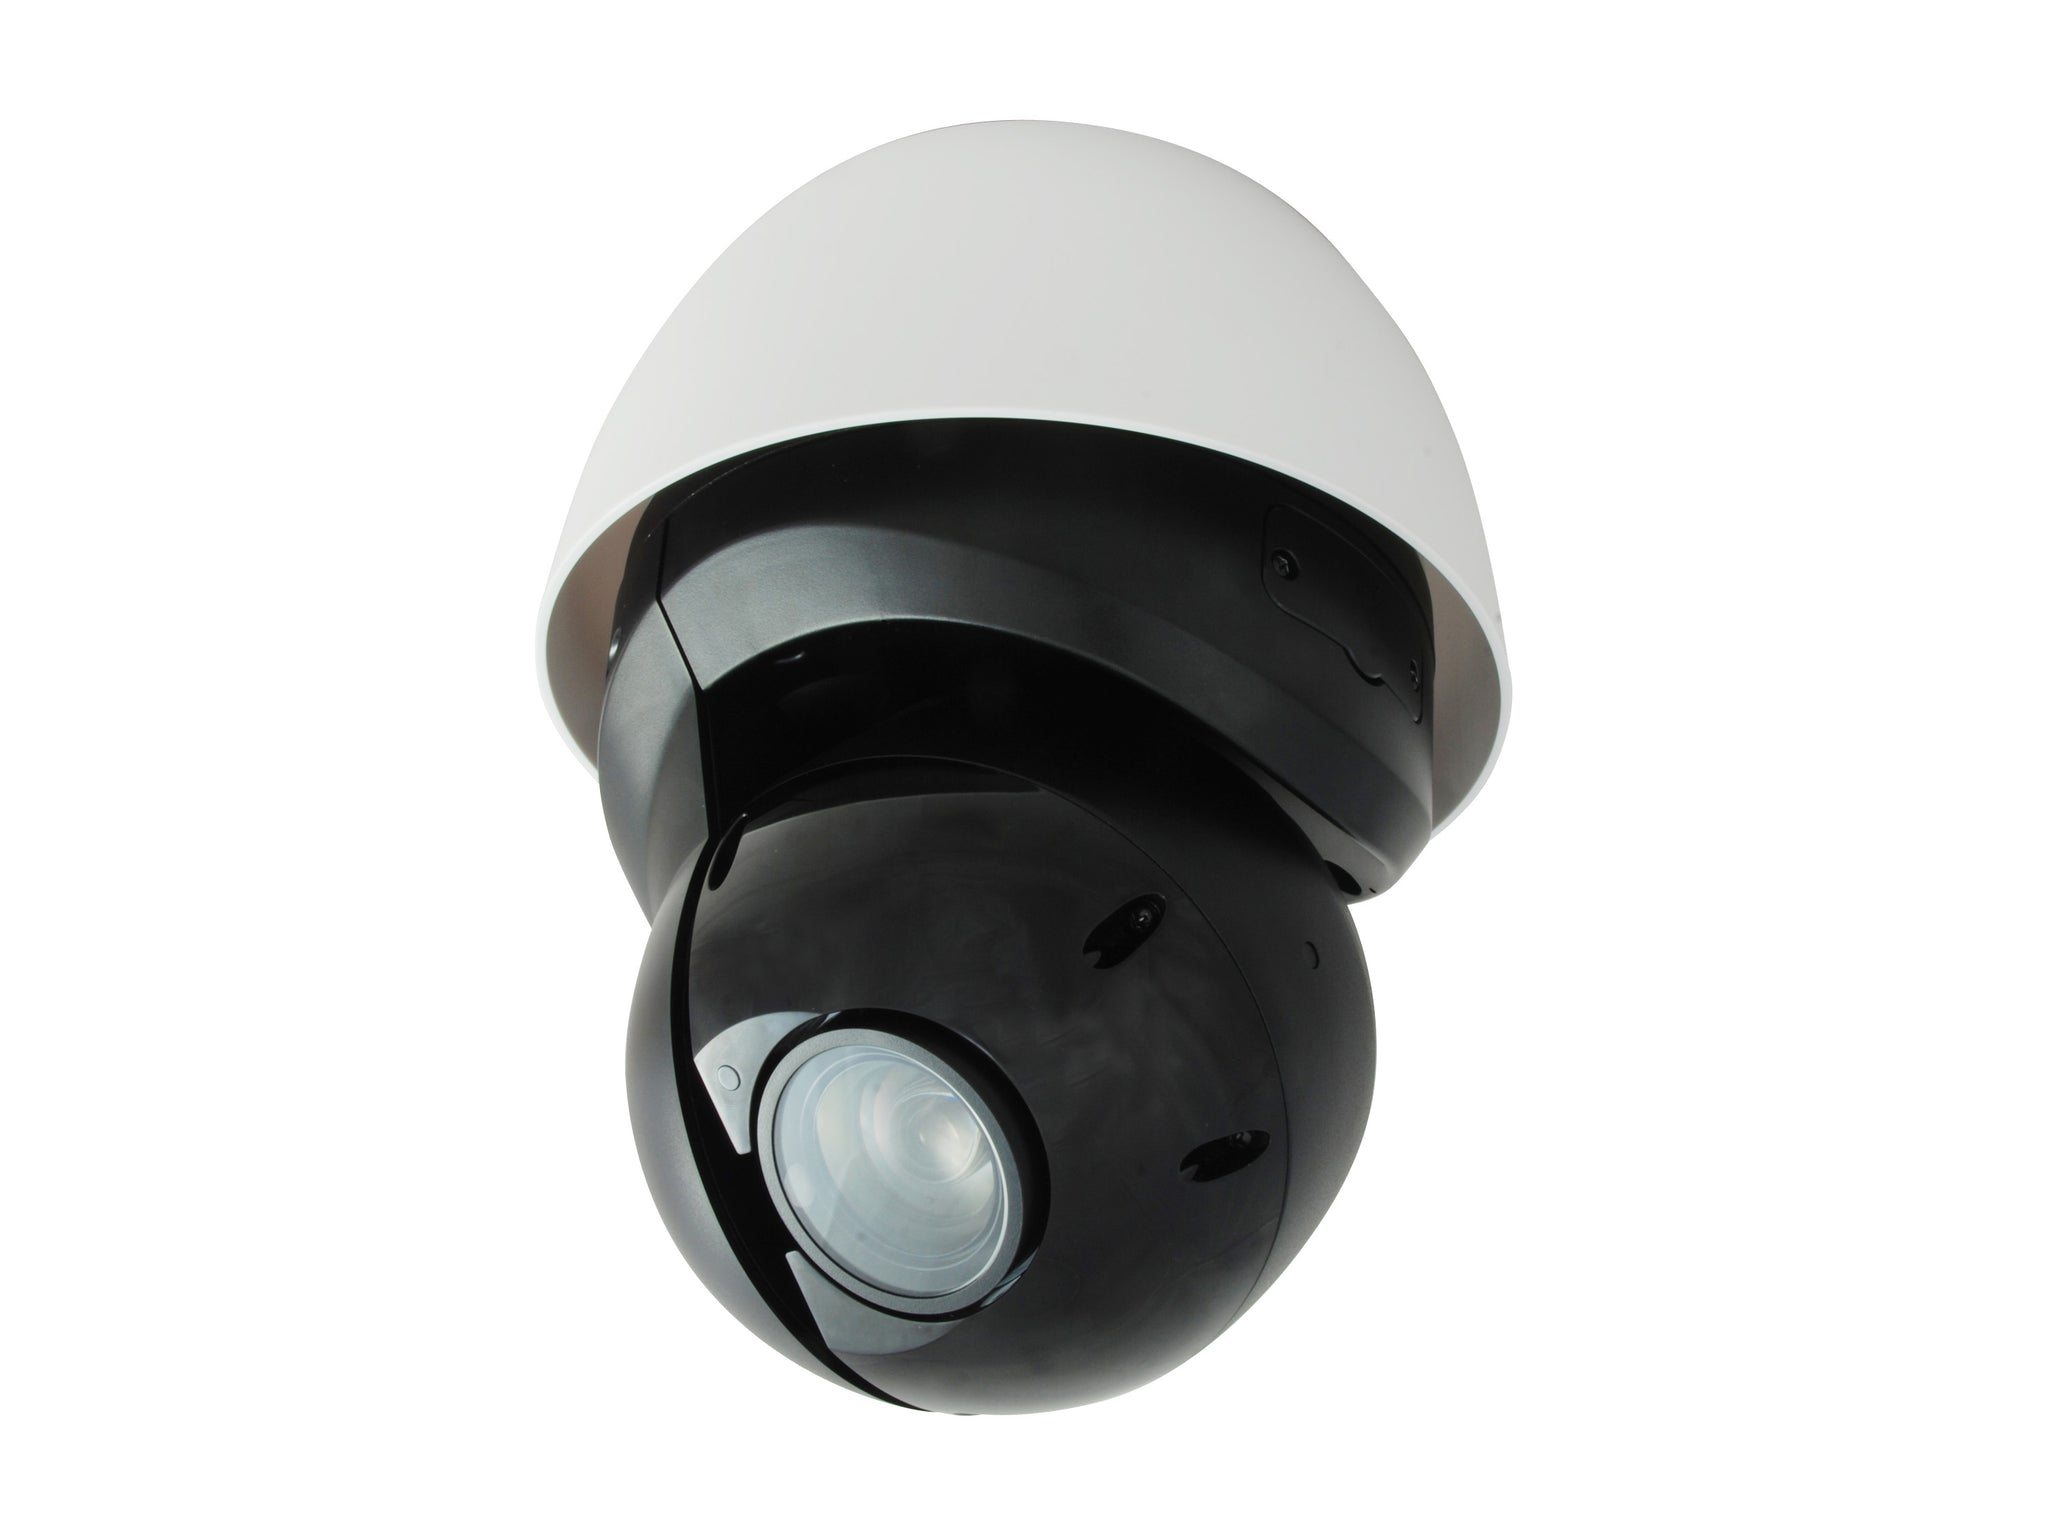 FCS-4047 PTZ Outdoor IP Network Camera, 4MP, PTZ, IR LEDs, 30X Optical Zoom